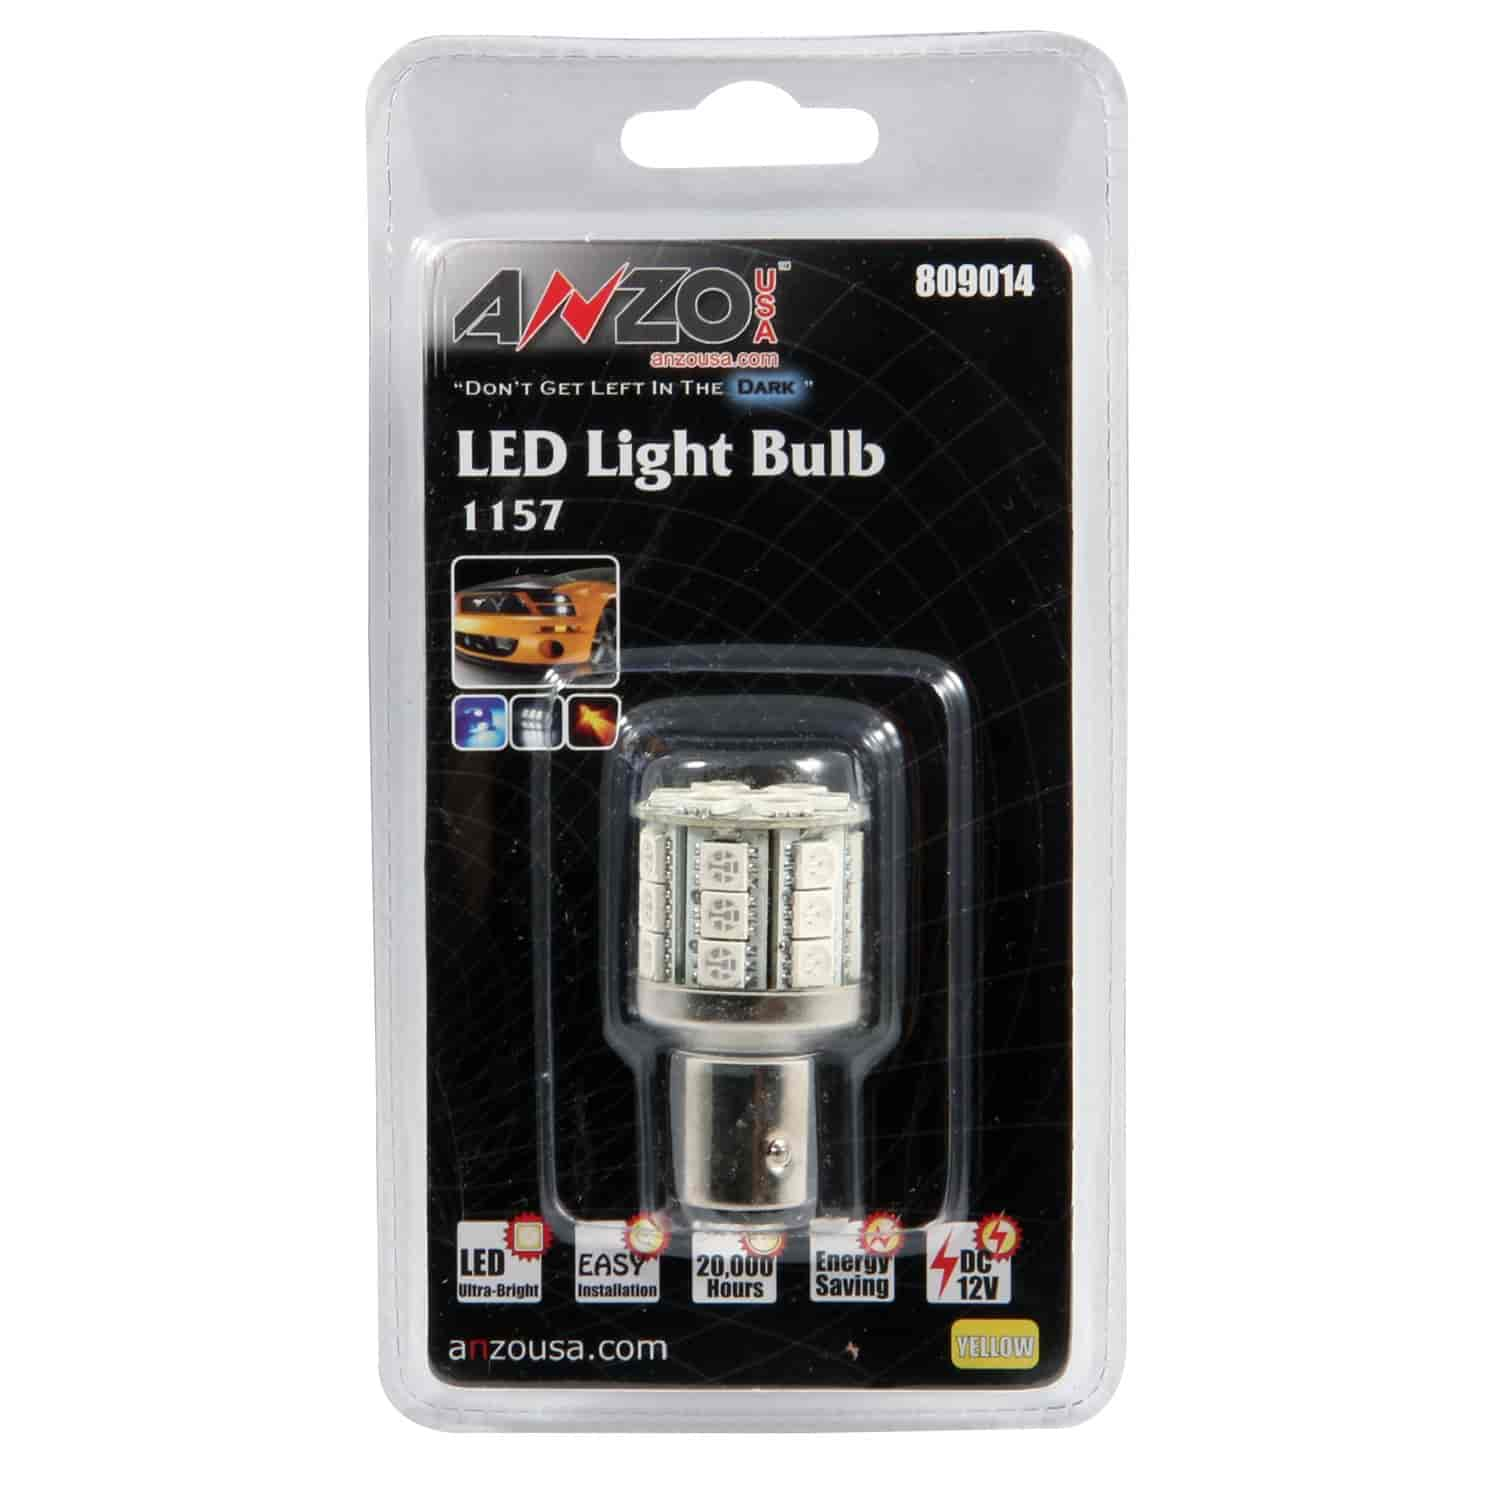 Anzo 809014 - Anzo LED Universal Light Bulbs